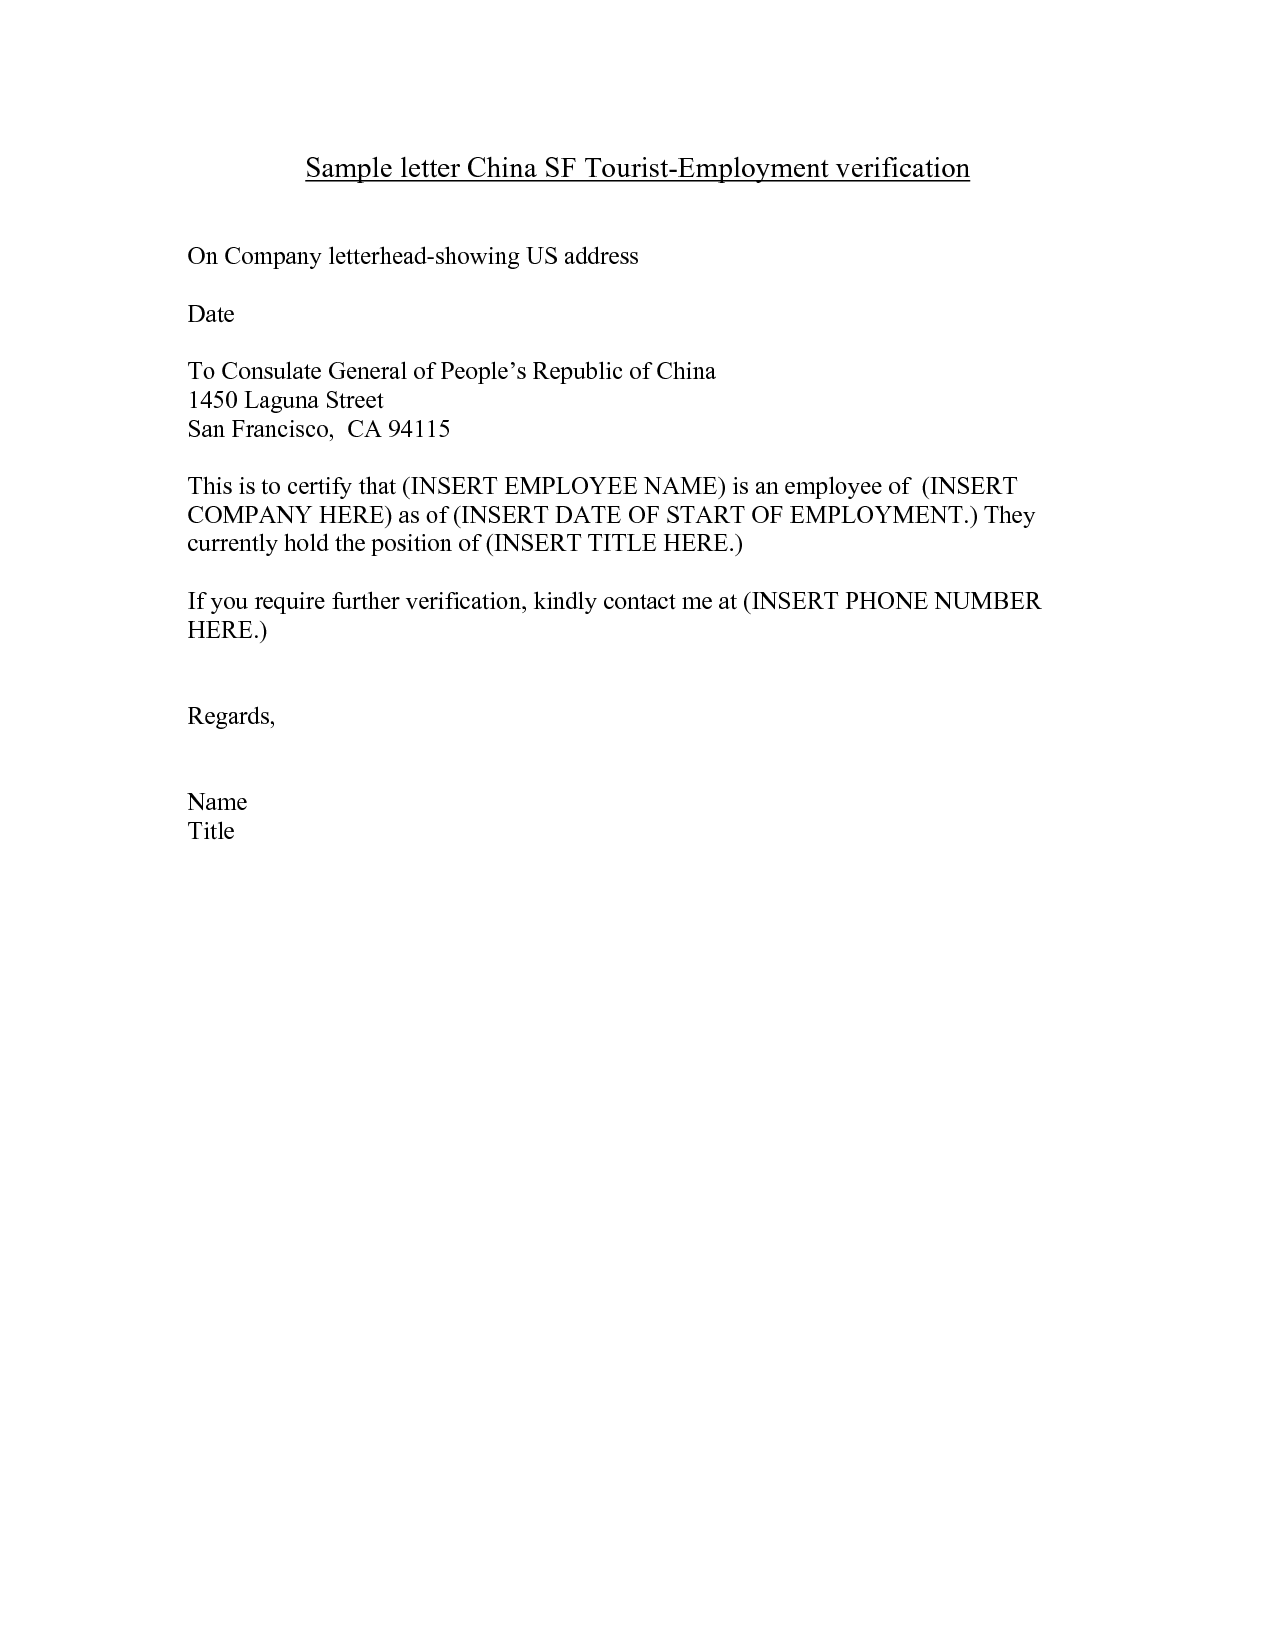 Verification Letter From Employer from dailyroabox.com